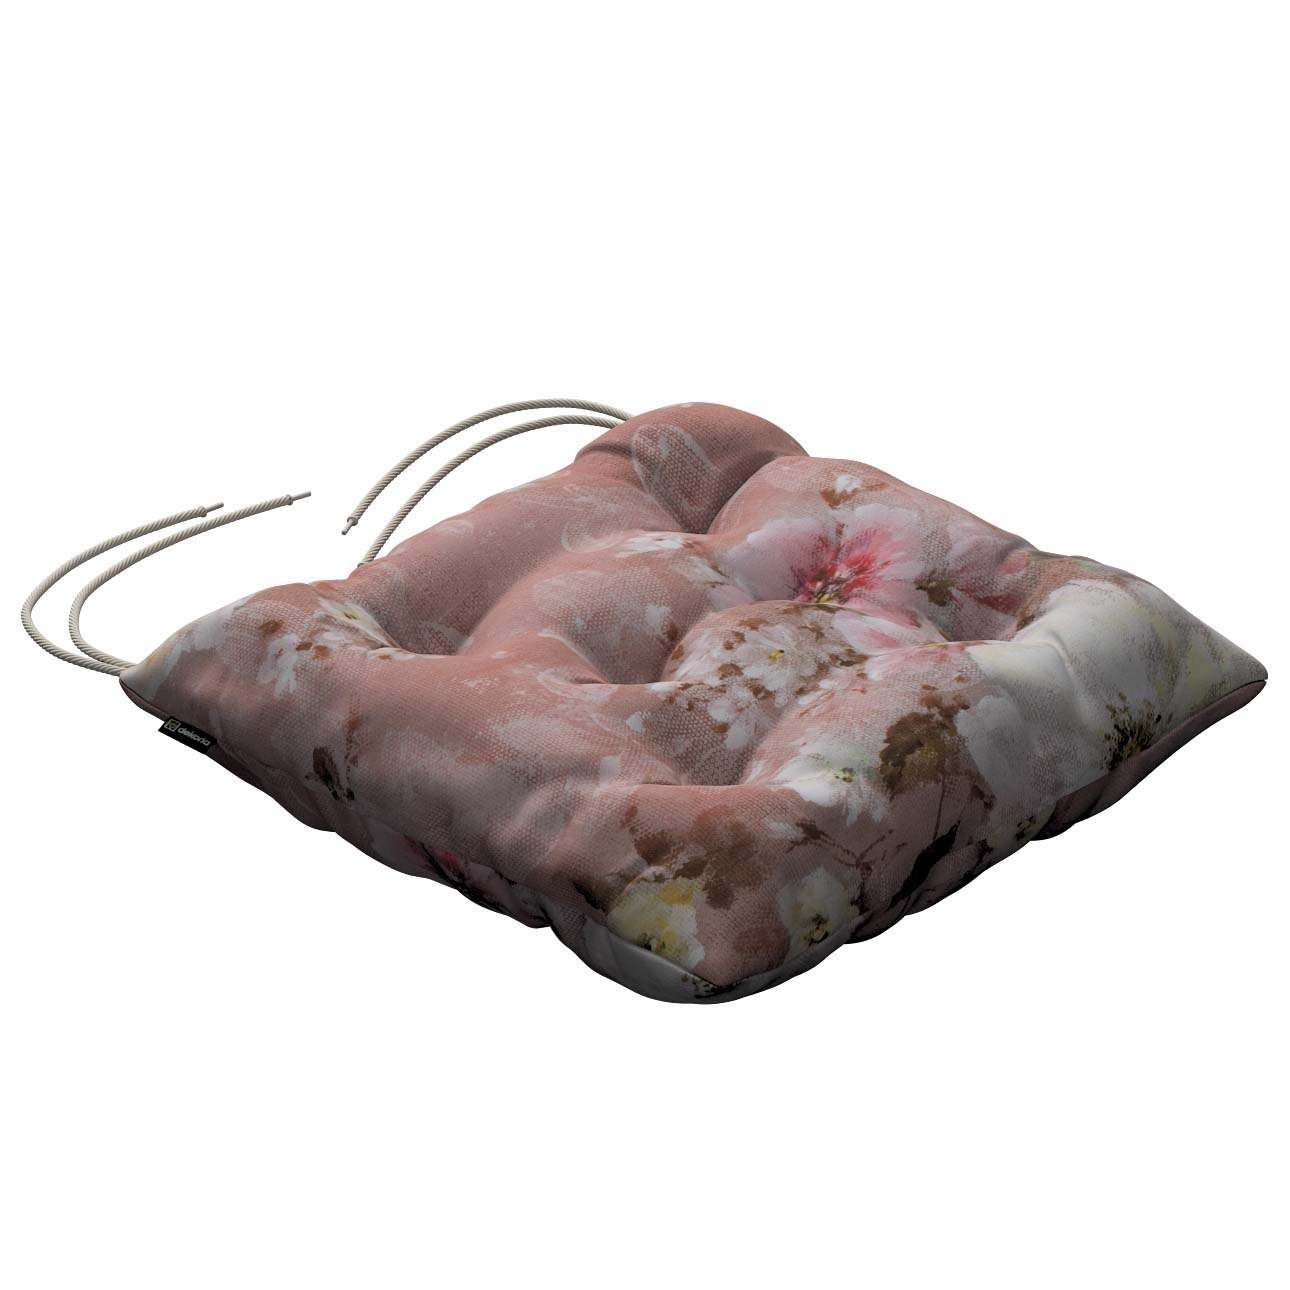 Jack seat pad with ties 40 × 40 × 8 cm (16 × 16 × 3 inch) in collection Monet, fabric: 137-83